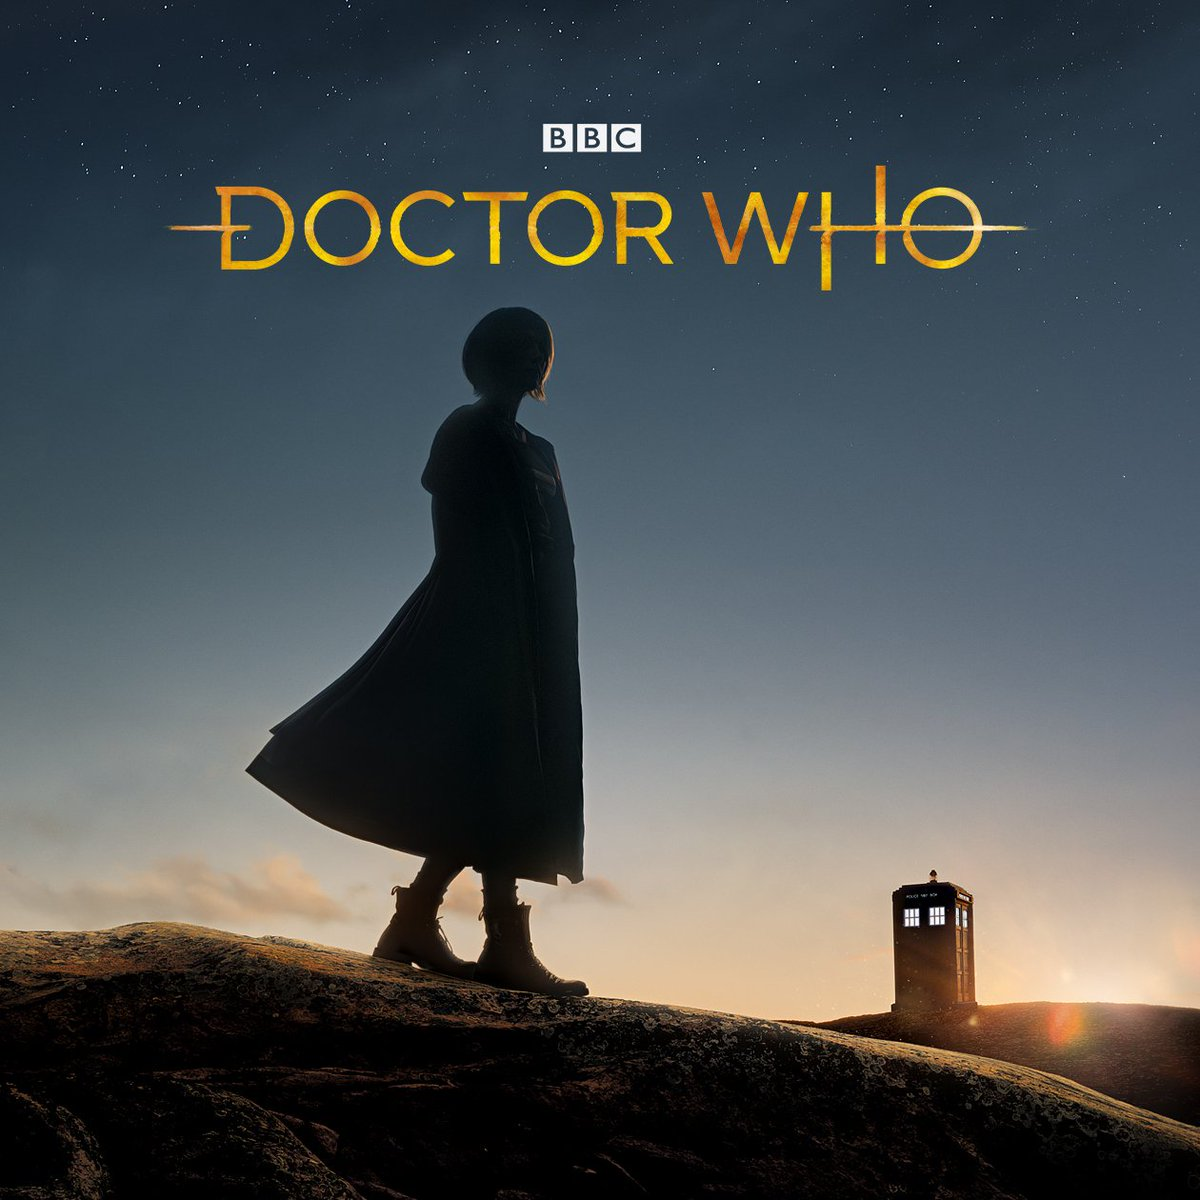 A new era of #DoctorWho is dawning…